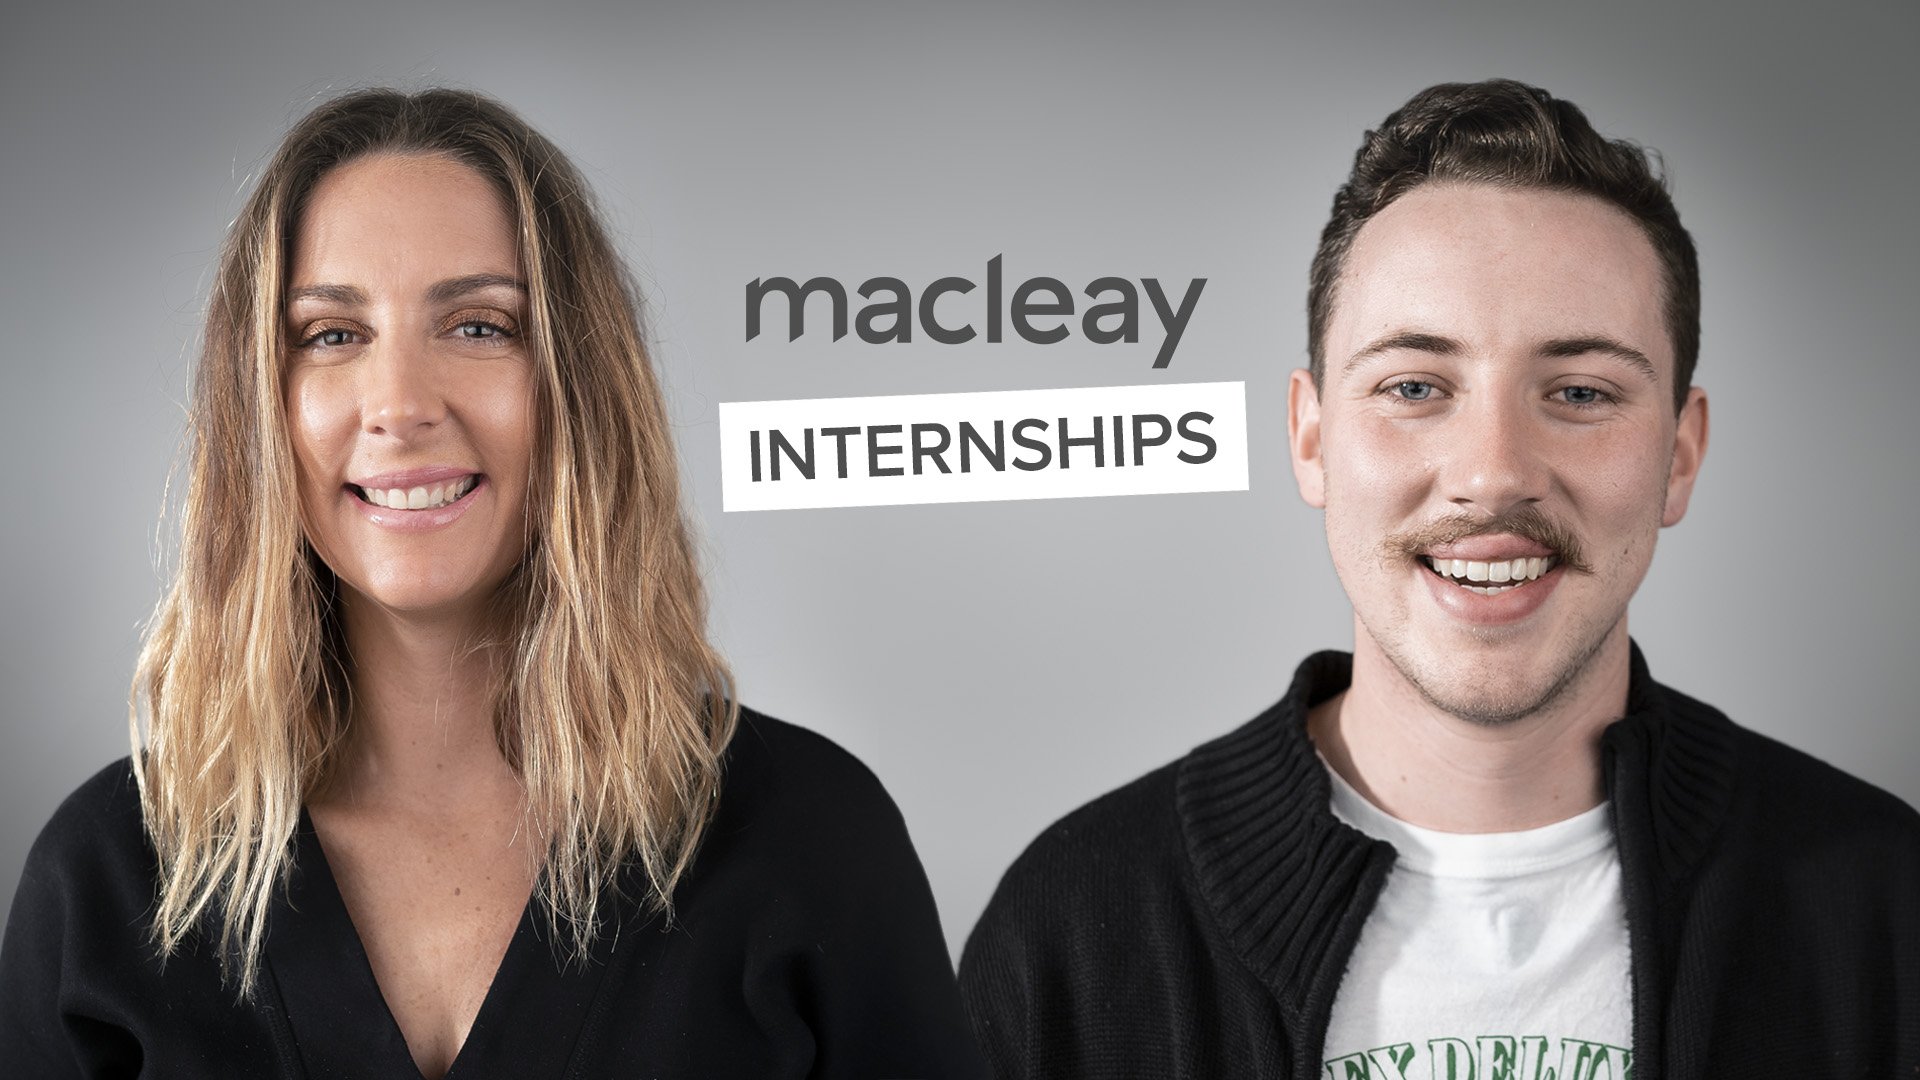 Macleay-College-Open-Day-Internships.jpg